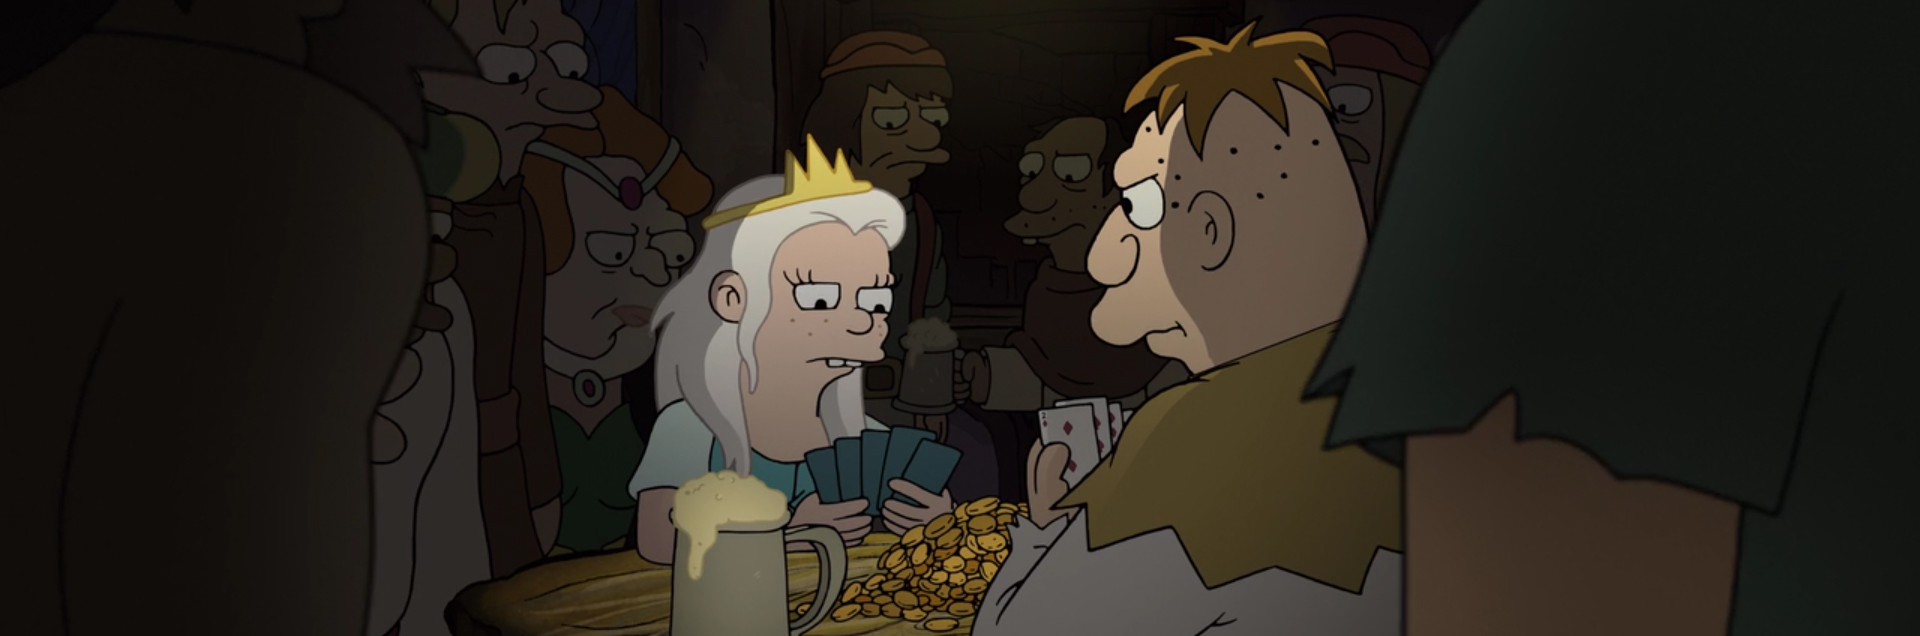 Disenchantment. Image Credit: Netflix/Rough Draft Studios